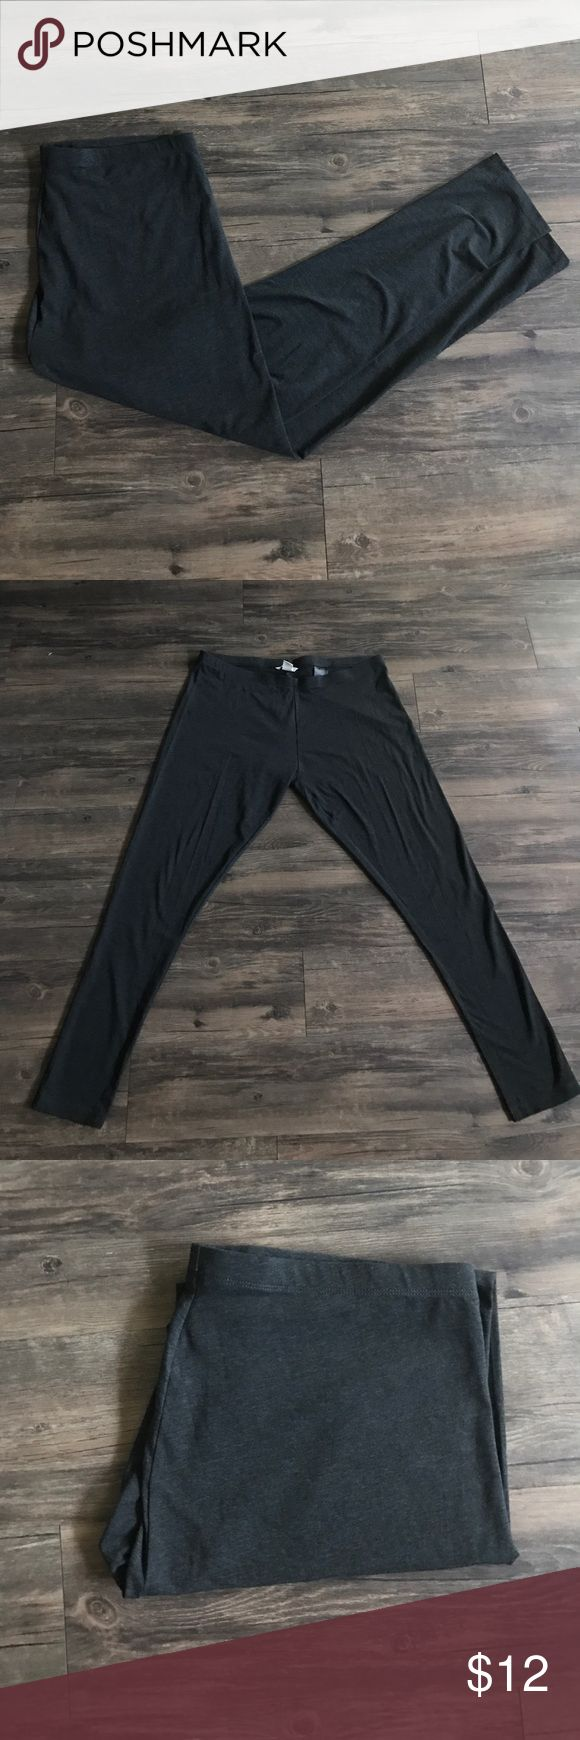 """Never worn! (PLUS) Grey H&M leggings Never worn! These are dark grey leggings from H&M size XL. Fits a 14/16 comfortably! They are long 32"""" inseam. H&M Pants Leggings"""